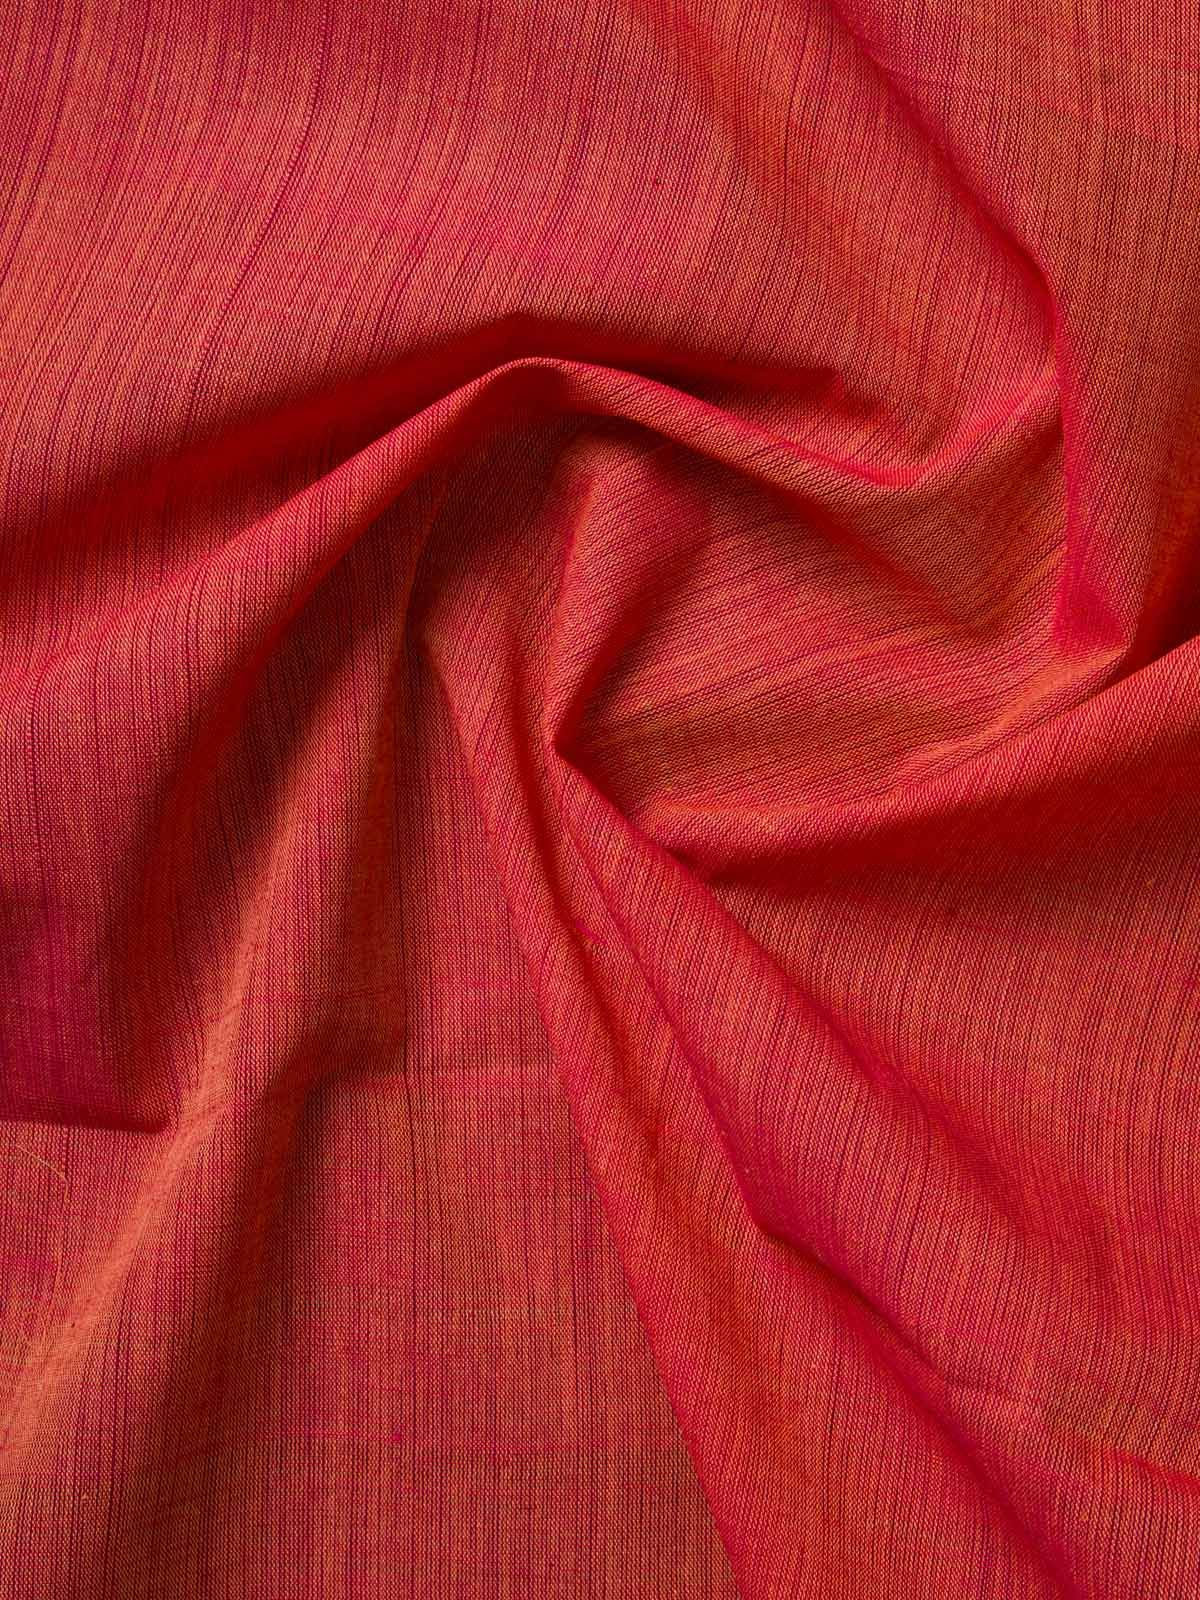 Rose color south cotton fabric